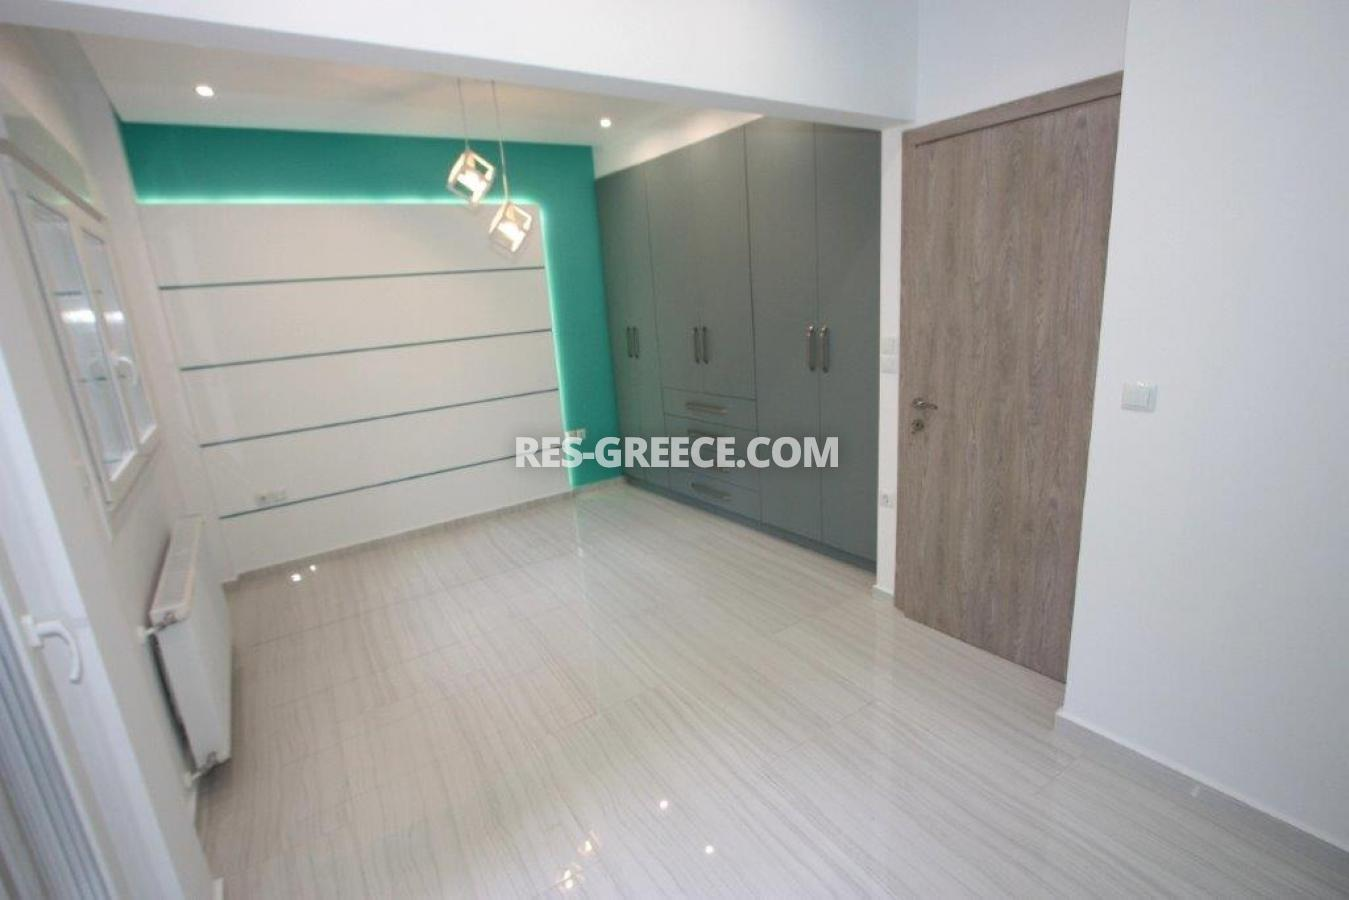 Poli 21, Central Macedonia, Greece - Apartment for residence or for long term rent - Photo 6